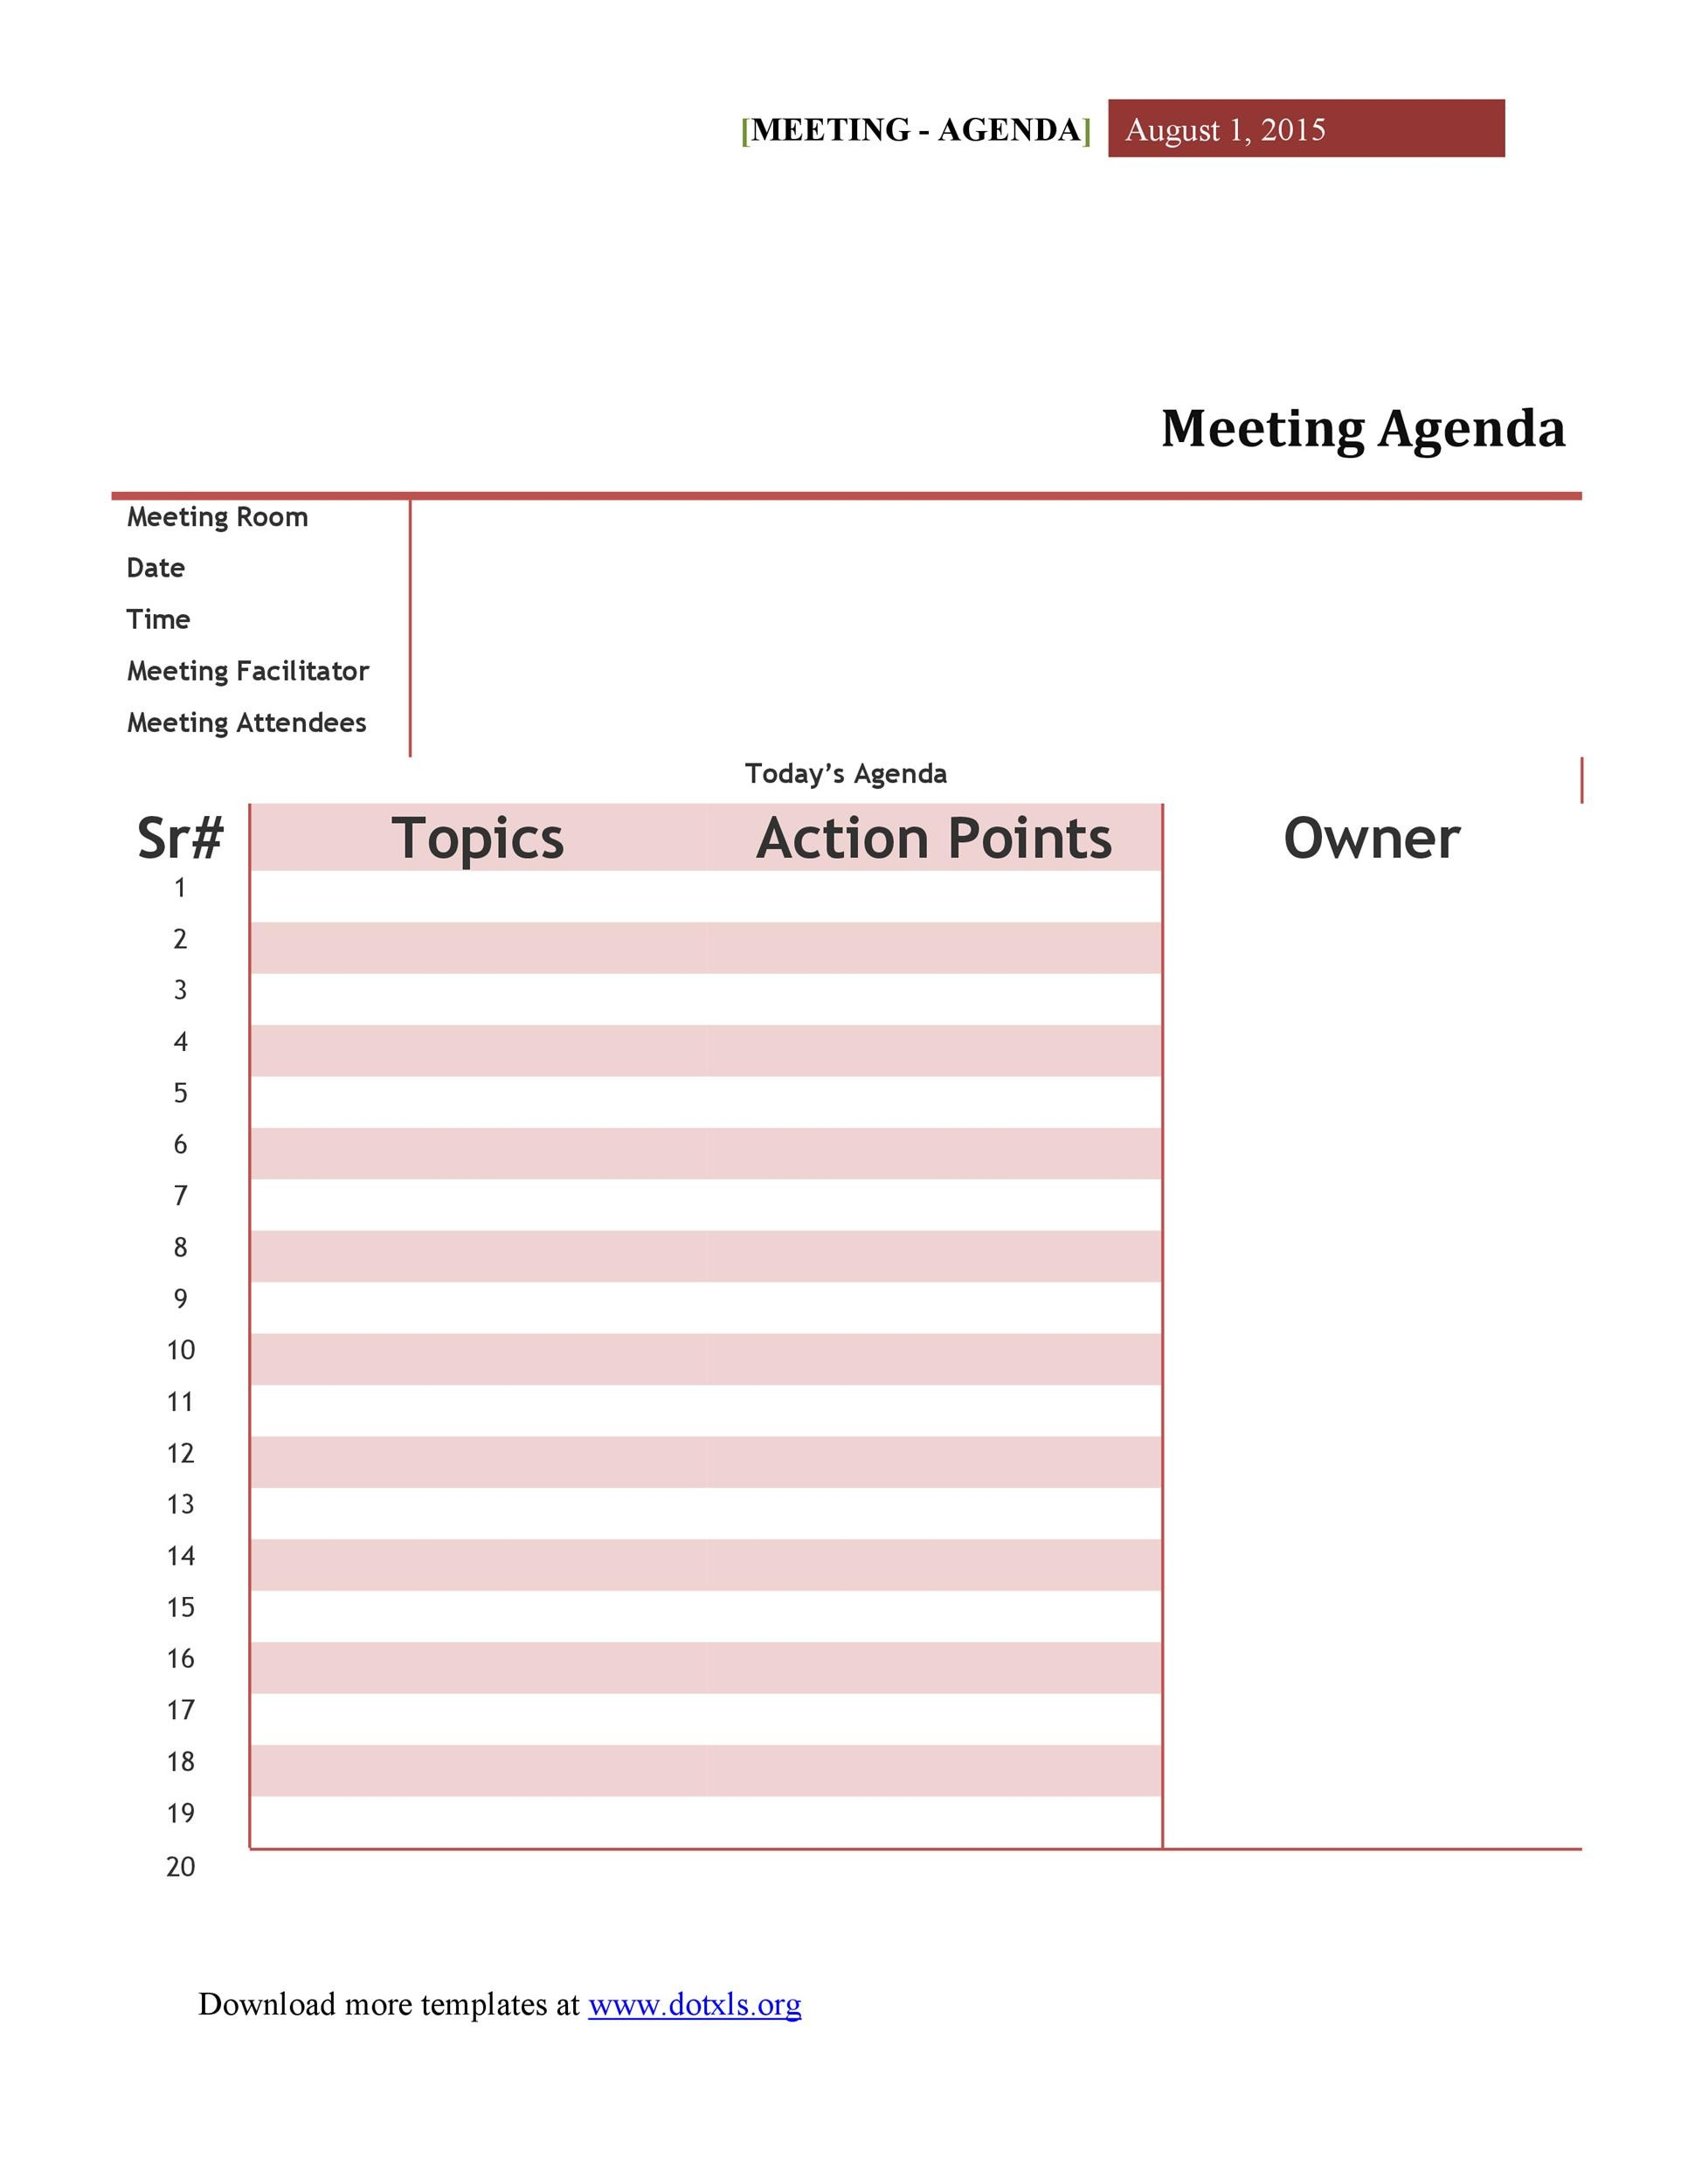 Meeting Agenda Template 14